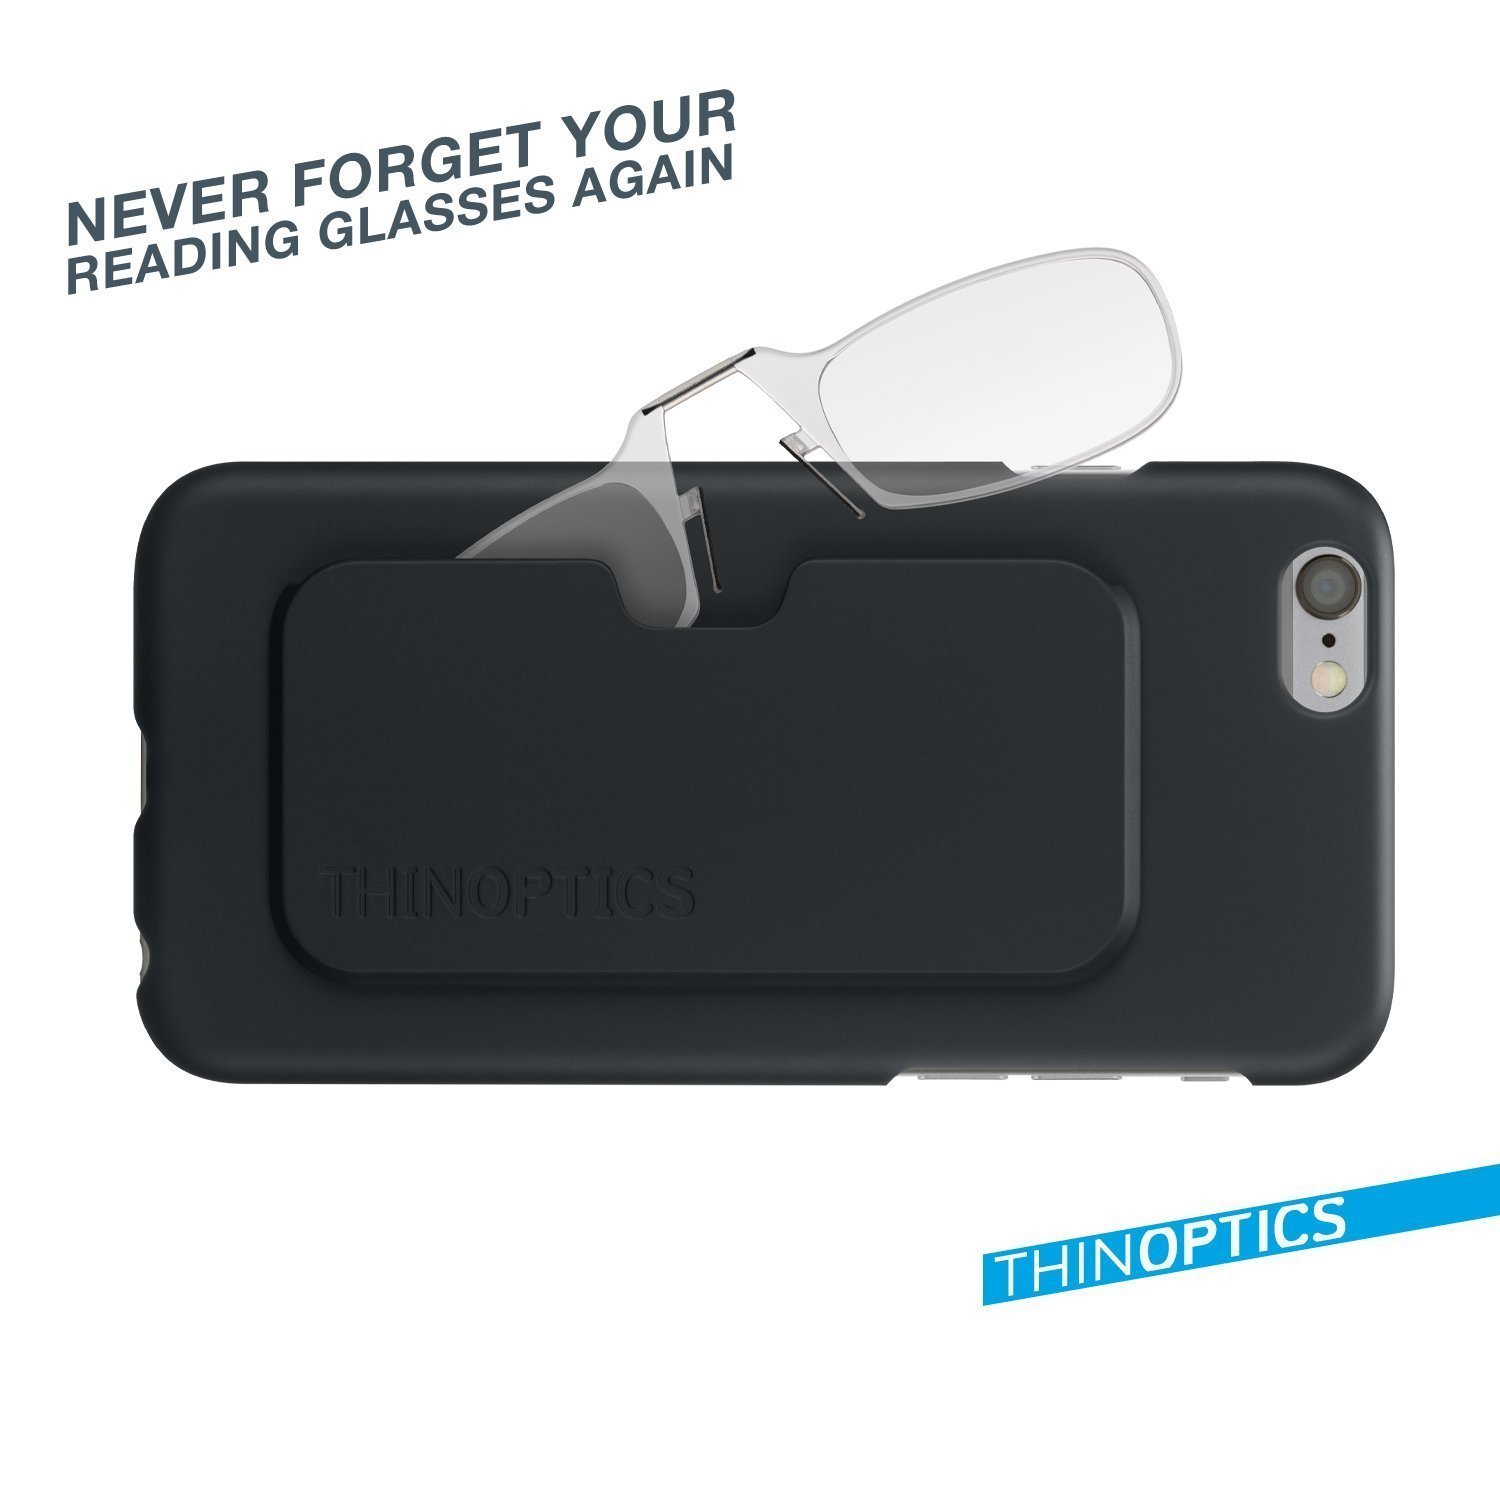 2af2a2e69736 Amazon.com  ThinOptics Reading Glasses + iPhone 6 Or iPhone 6S Case  Shoes